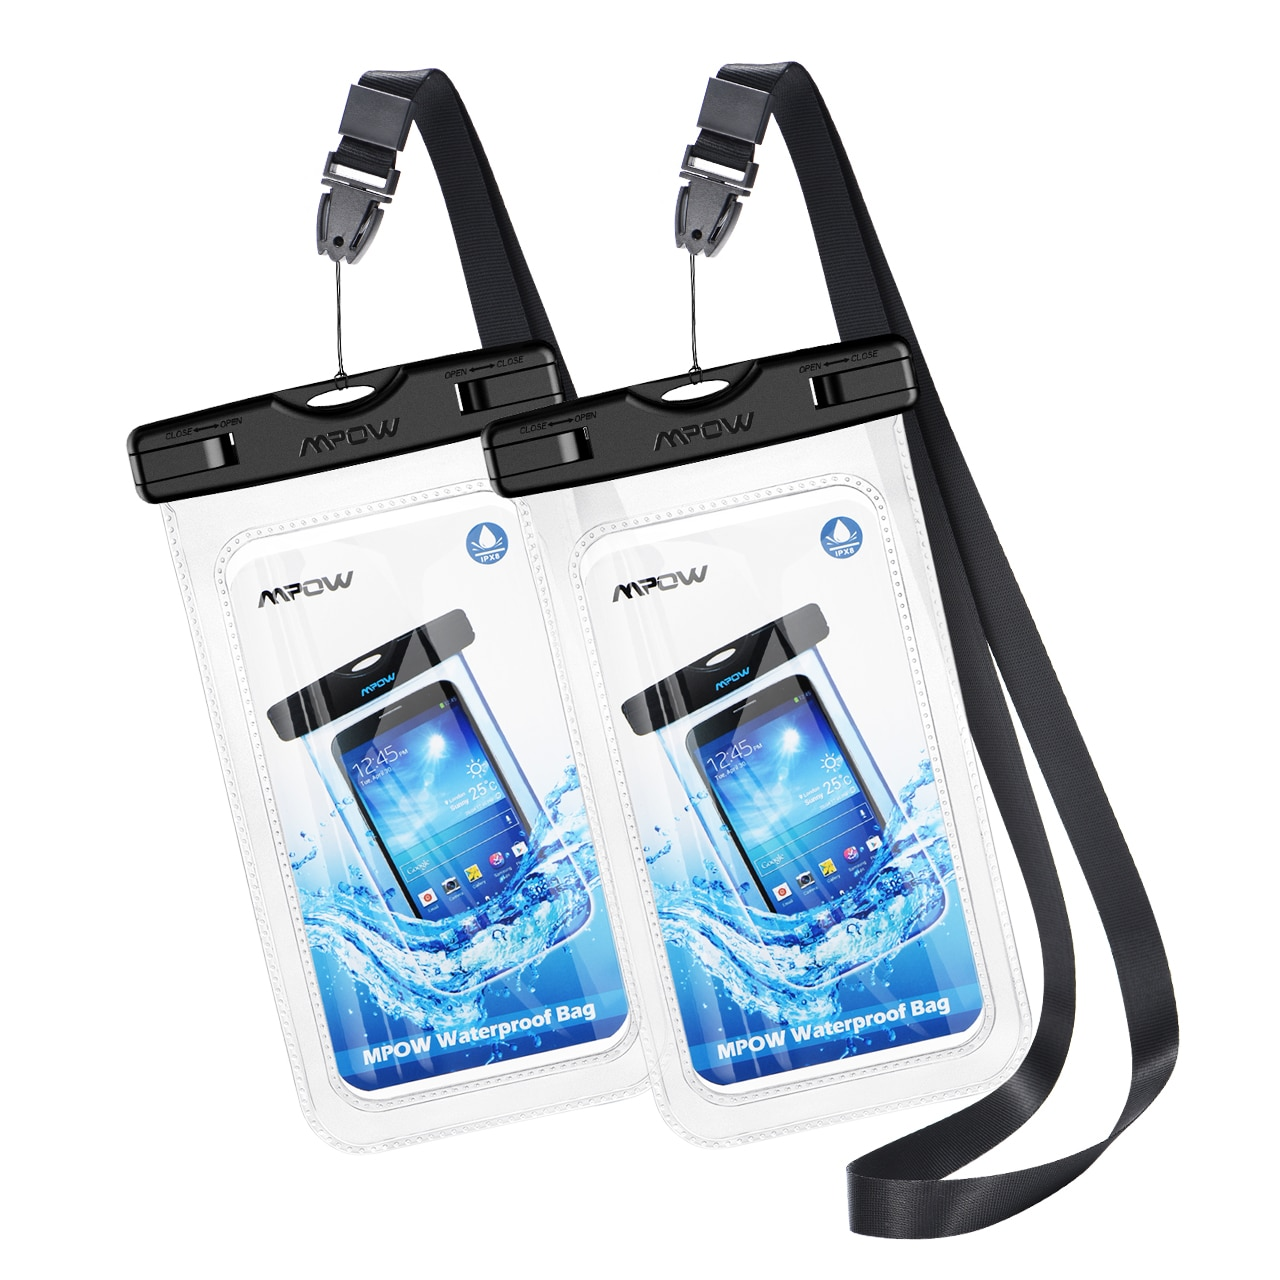 H273fcf8180904bdf851192d536cb29fbX - 2PCS Mpow 097 IPX8 Waterproof Phone Bag Pouch Case Universal for 7.0 inch Phones Home Button Cutout Take Photo Underwater IP68